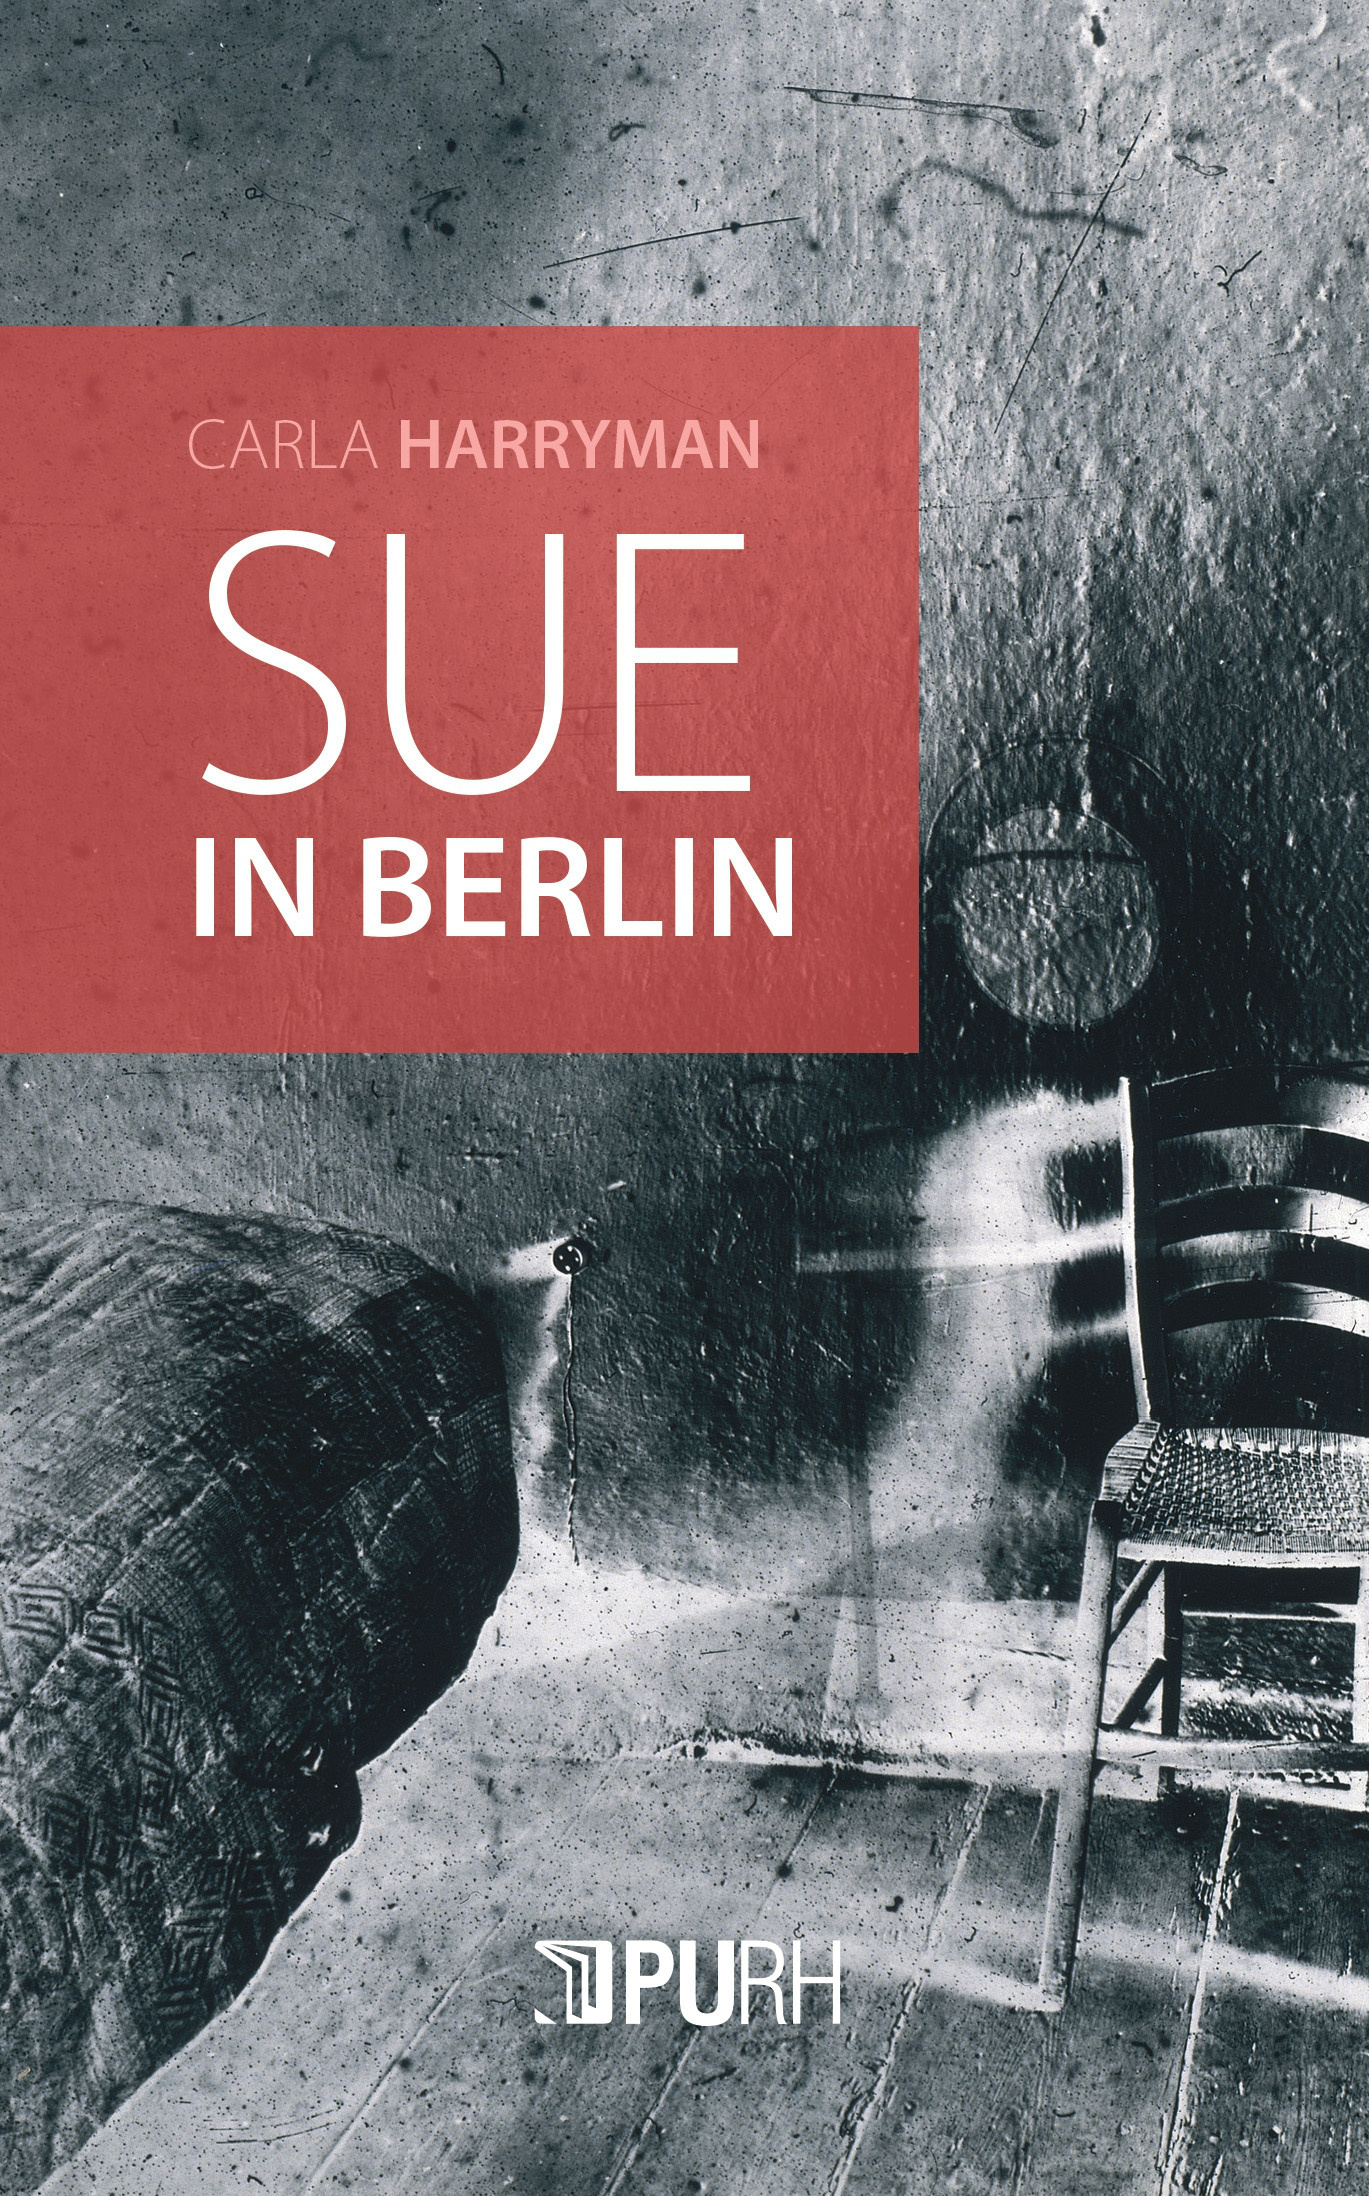 SUE IN BERLIN